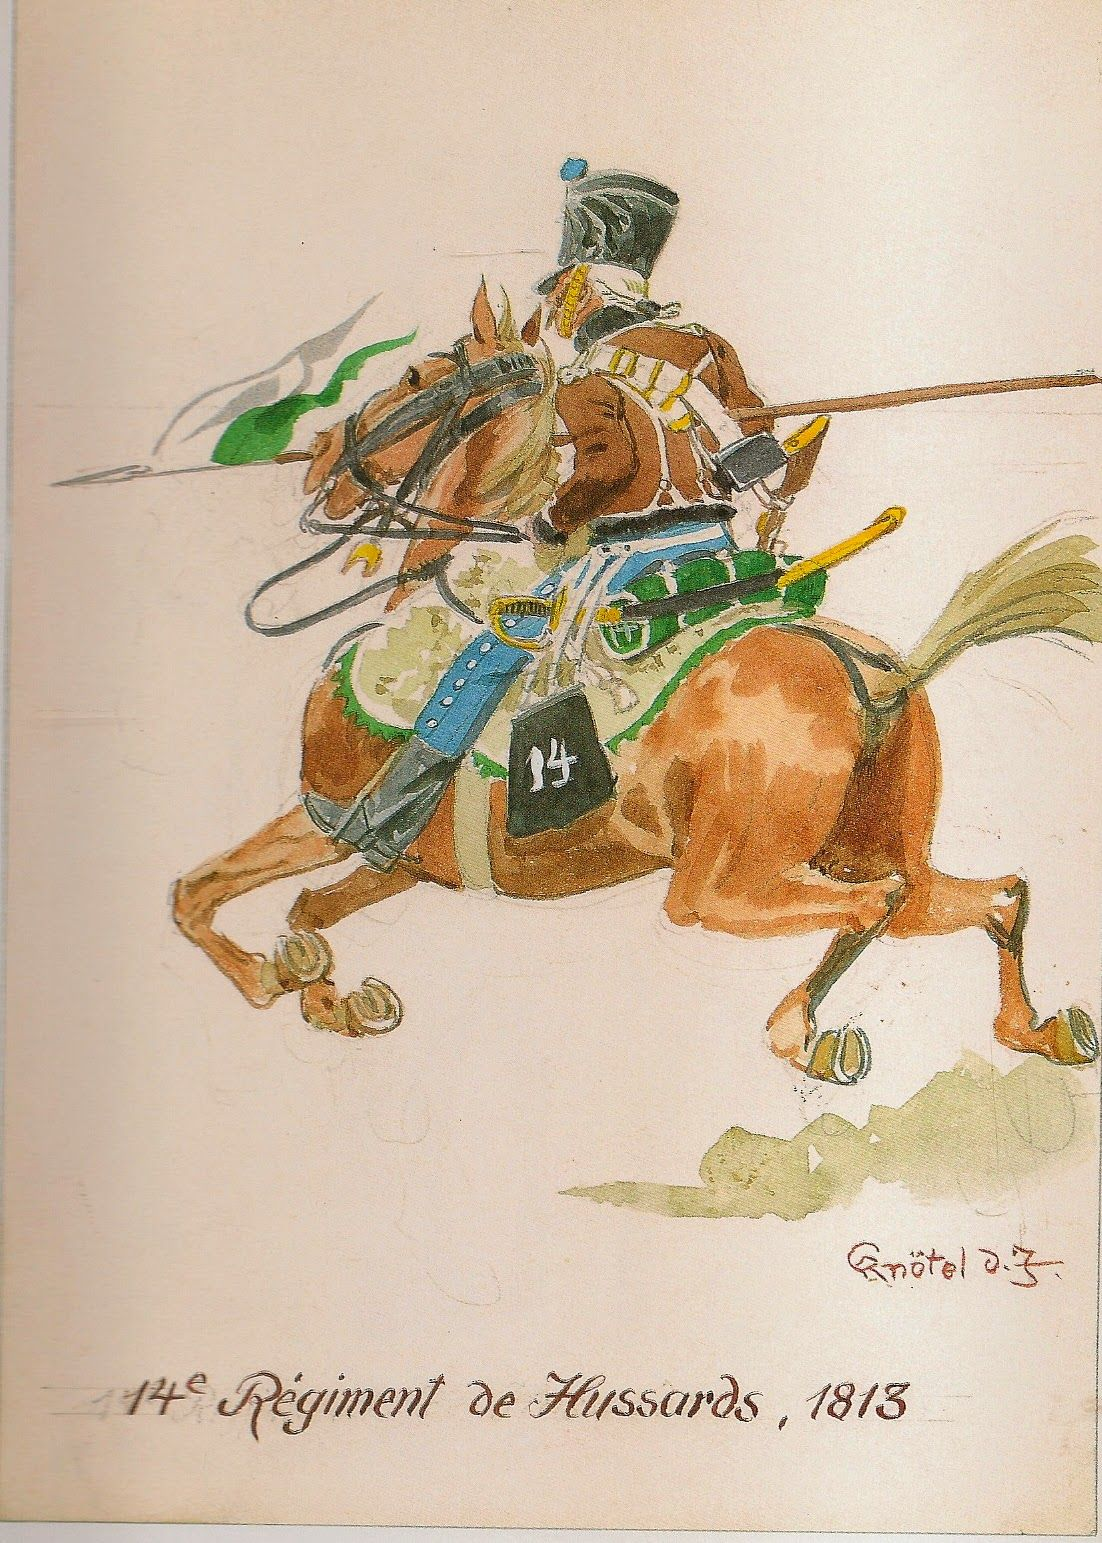 French; 14th Hussars, 1813